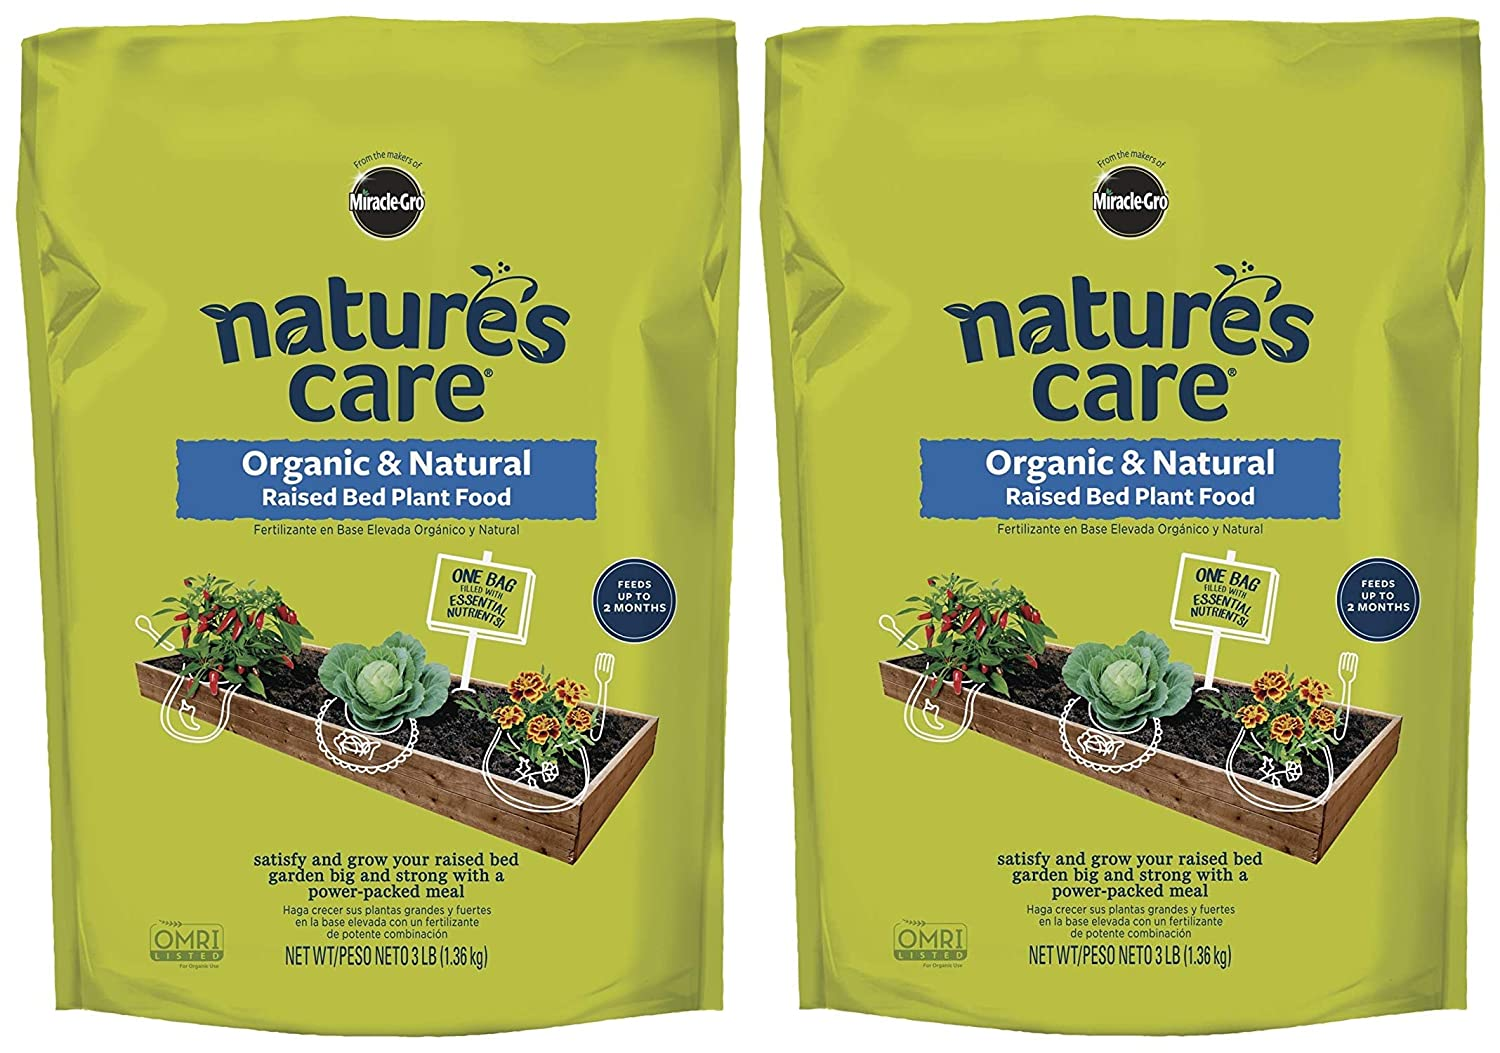 Amazon.com: Natures Care Organic & Natural Raised Bed Plant Food (Twо Pаck): Garden & Outdoor